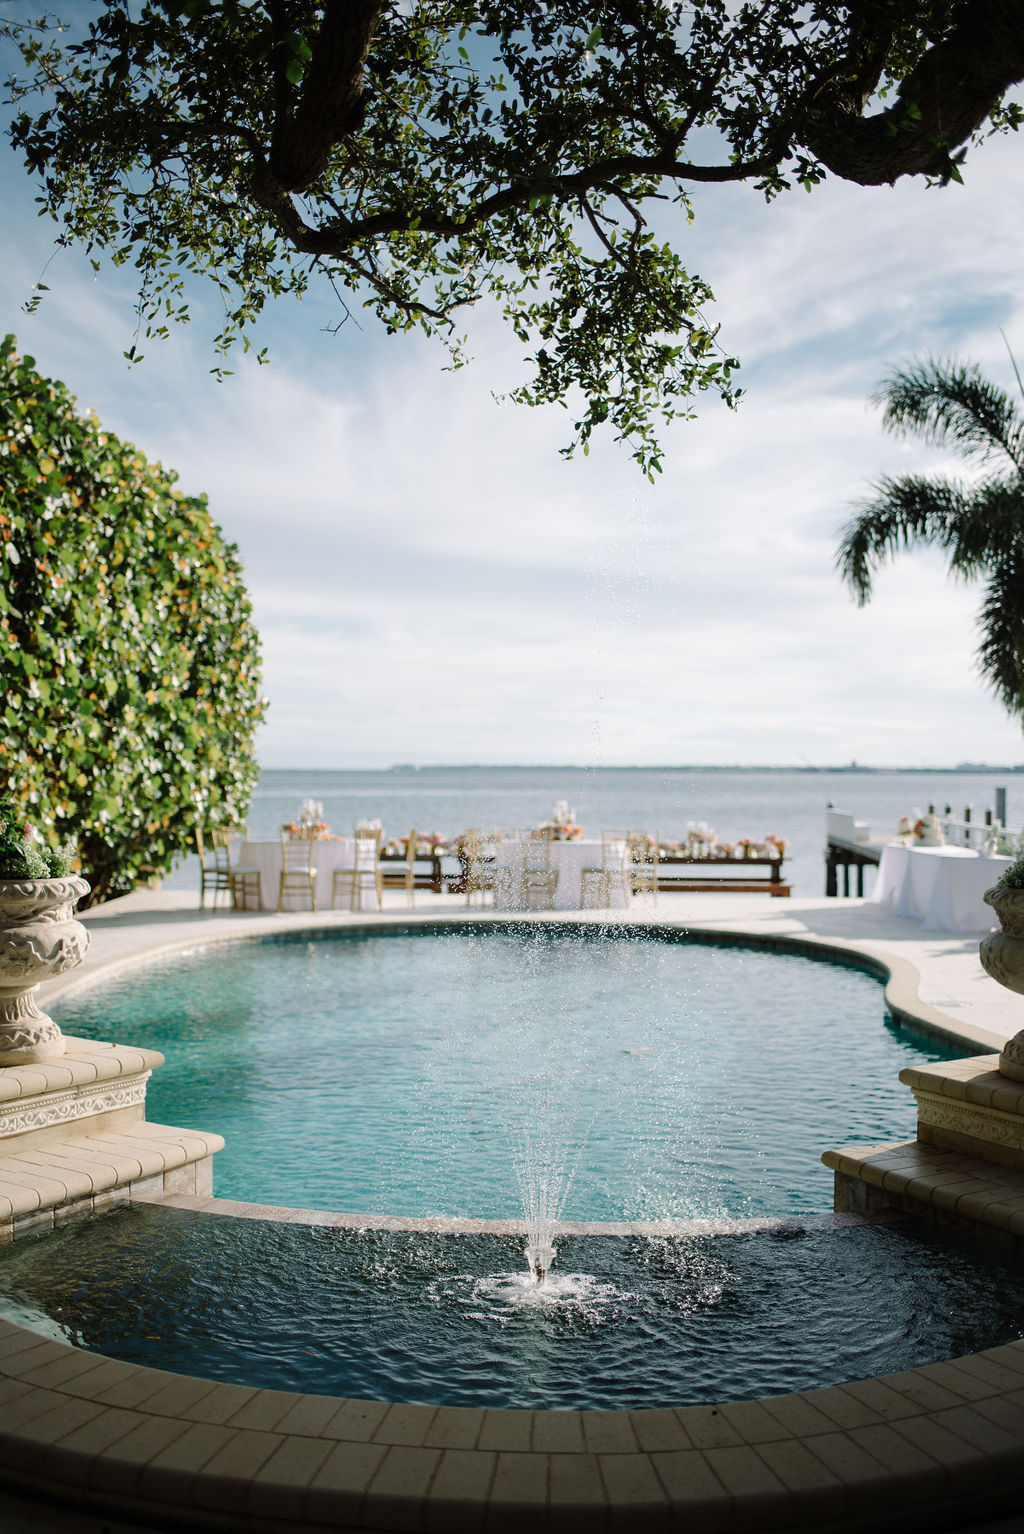 St. Petersburg Romantic Waterfront Wedding Reception at a Private Home